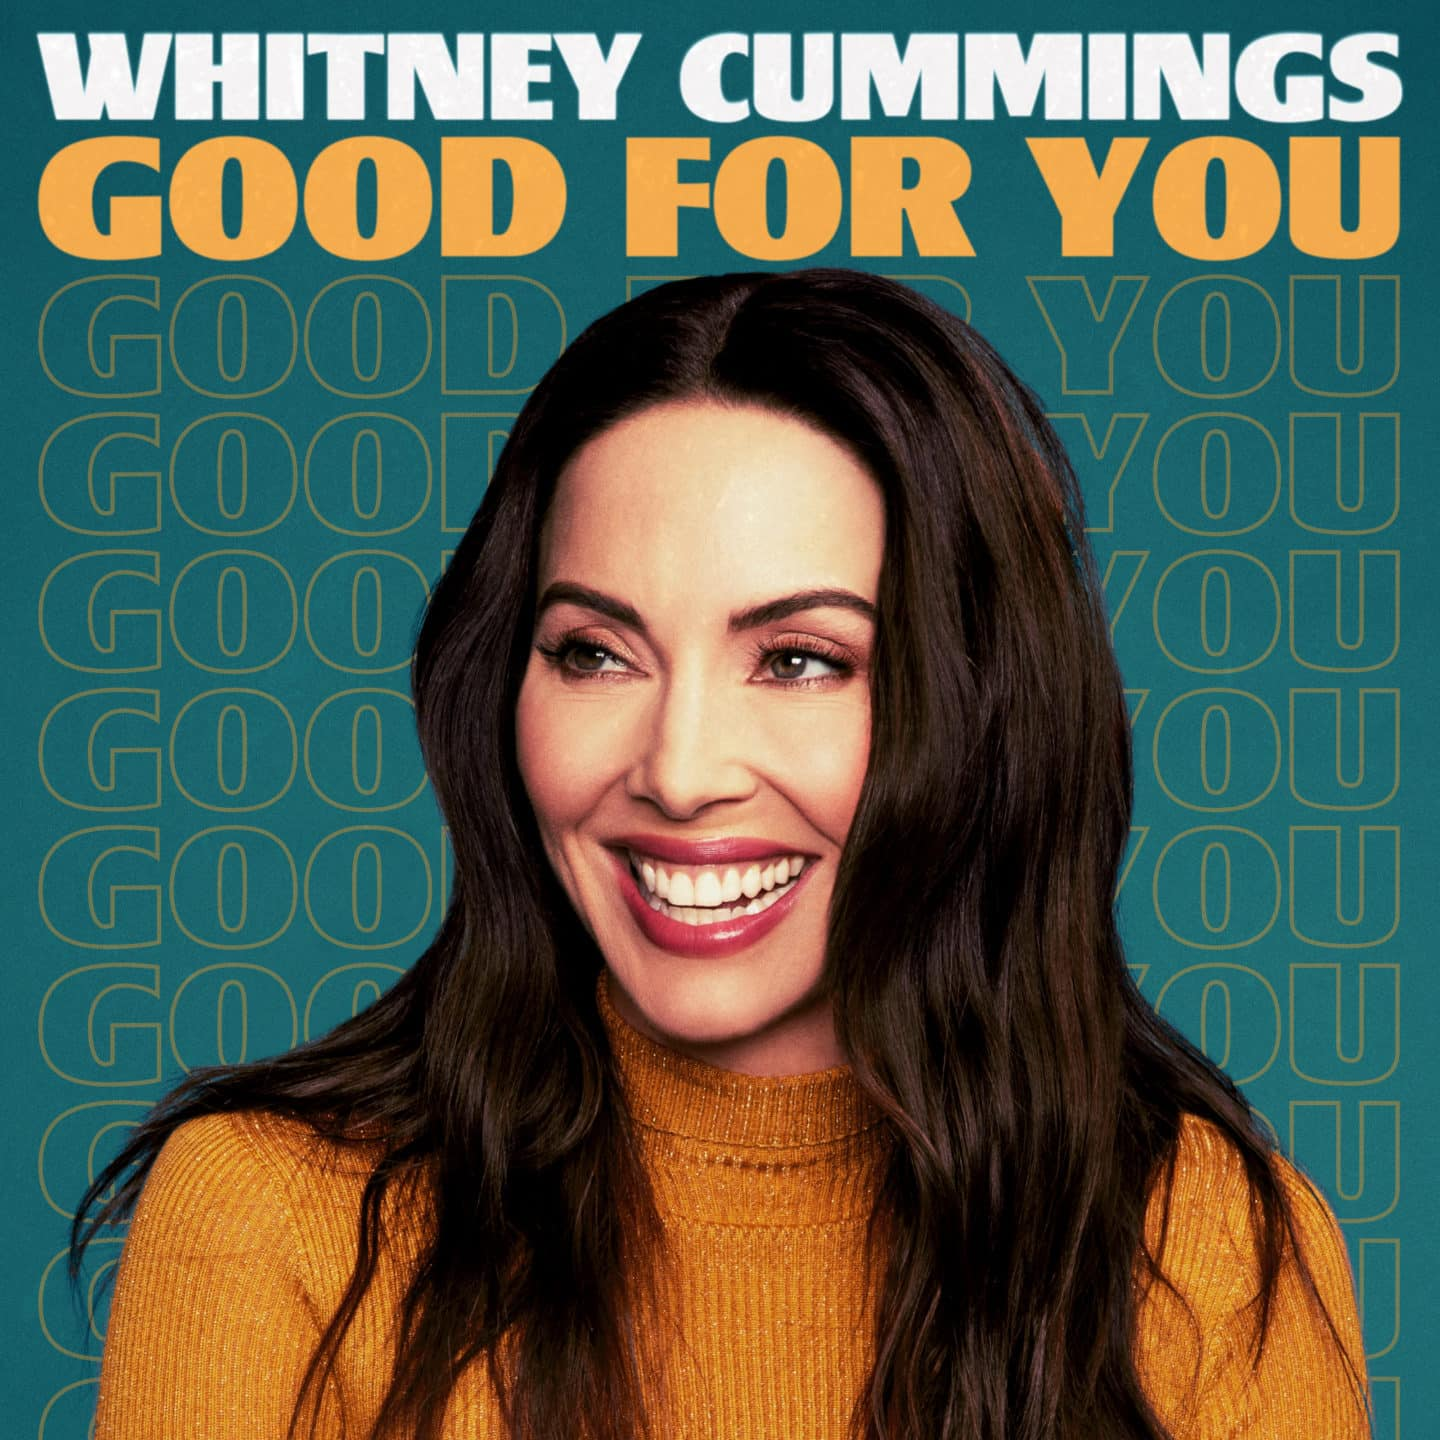 TOP 5 FAVORITE PODCASTS Whitney Cummings